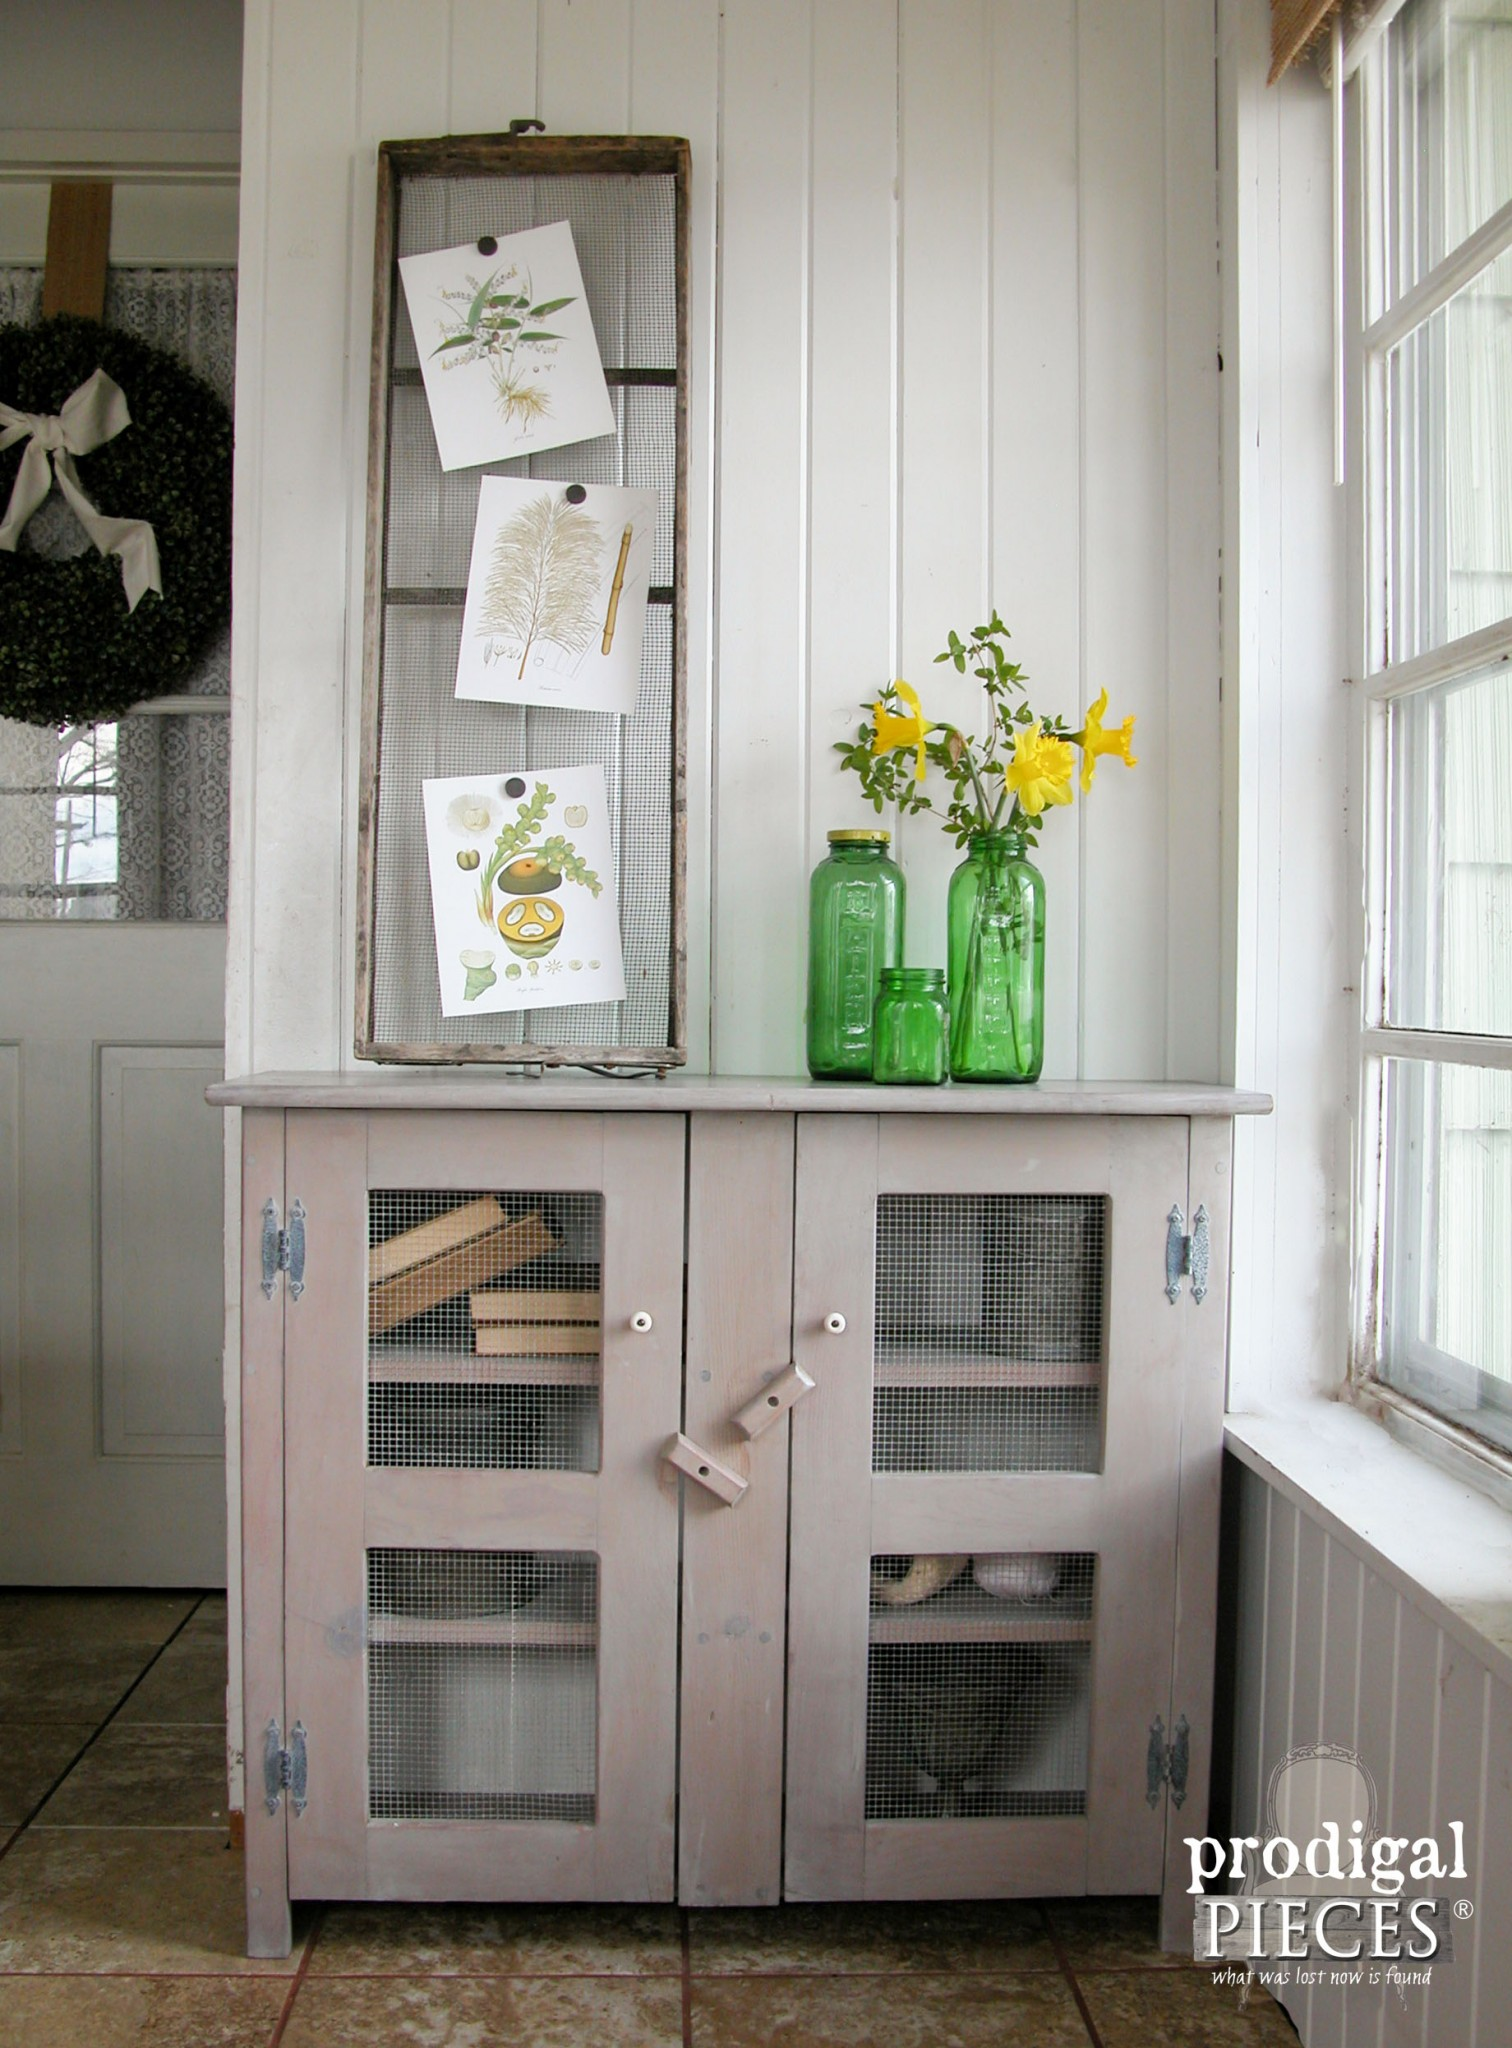 Sunbleached Primitive Cupboard Redone by Prodigal Pieces | www.prodigalpieces.com